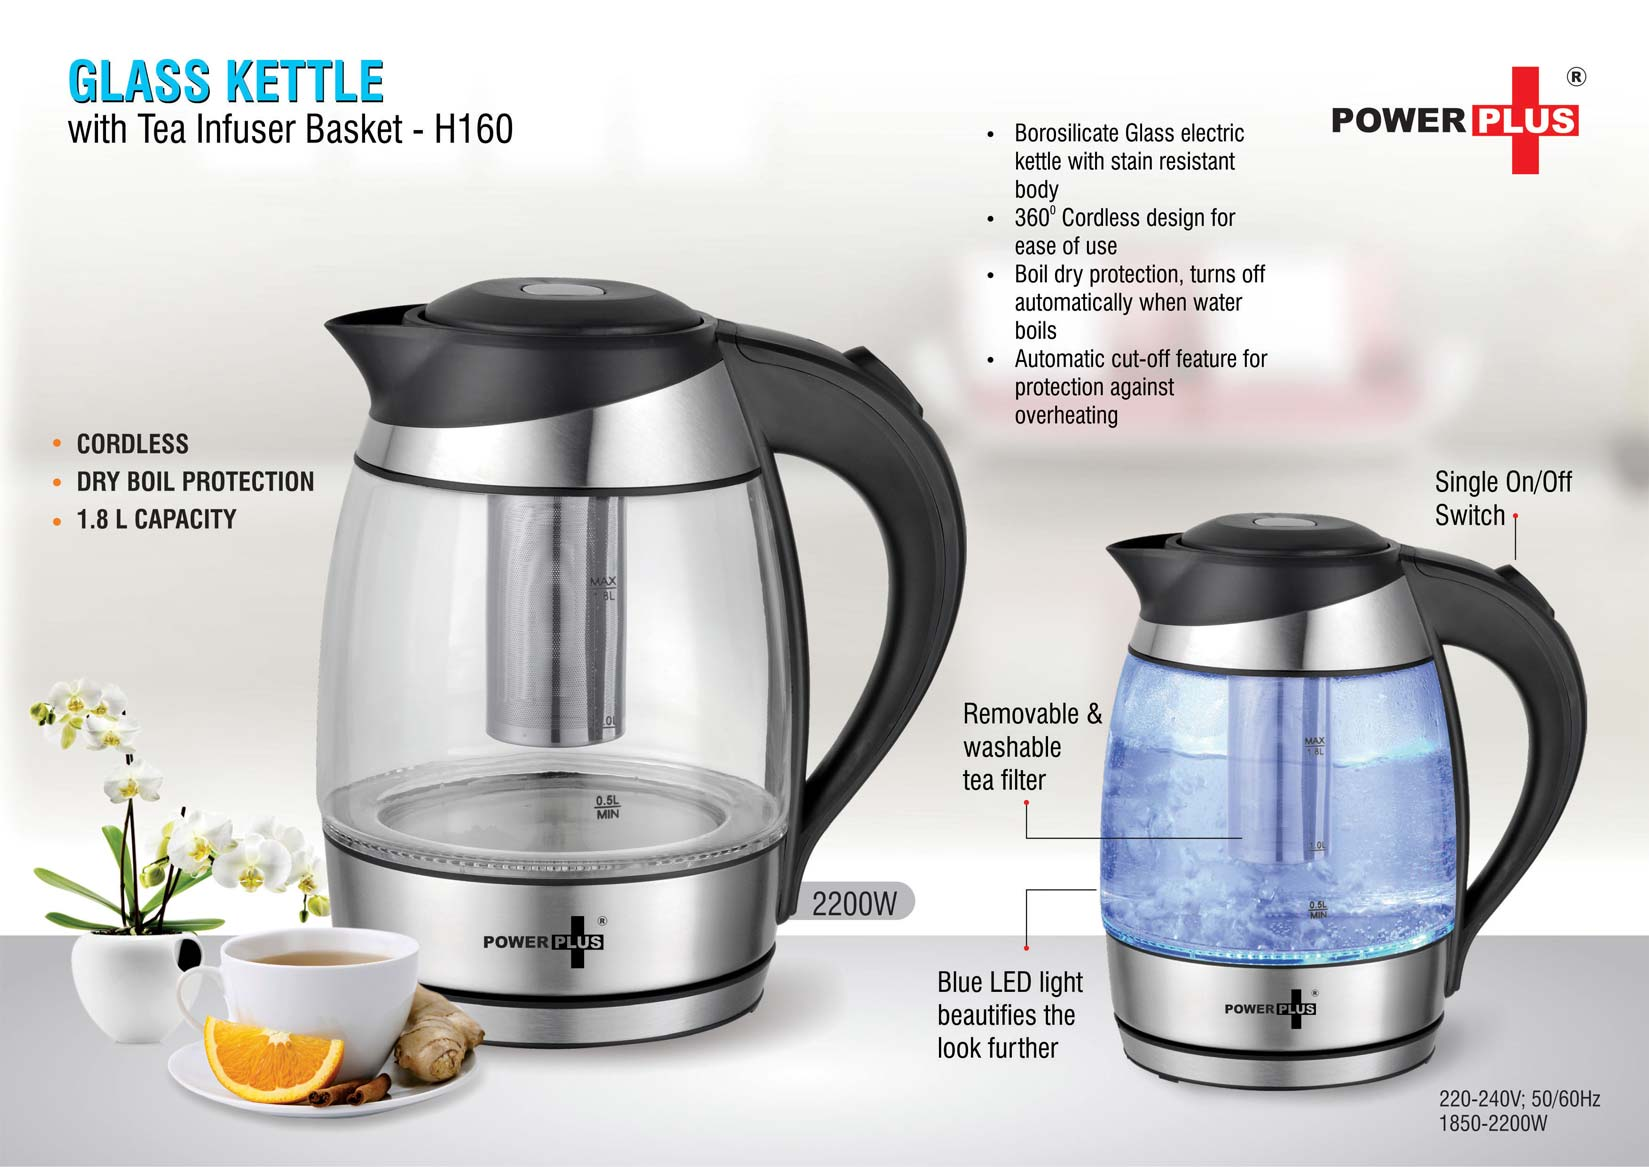 H160 - Glass Kettle with Tea infuser basket